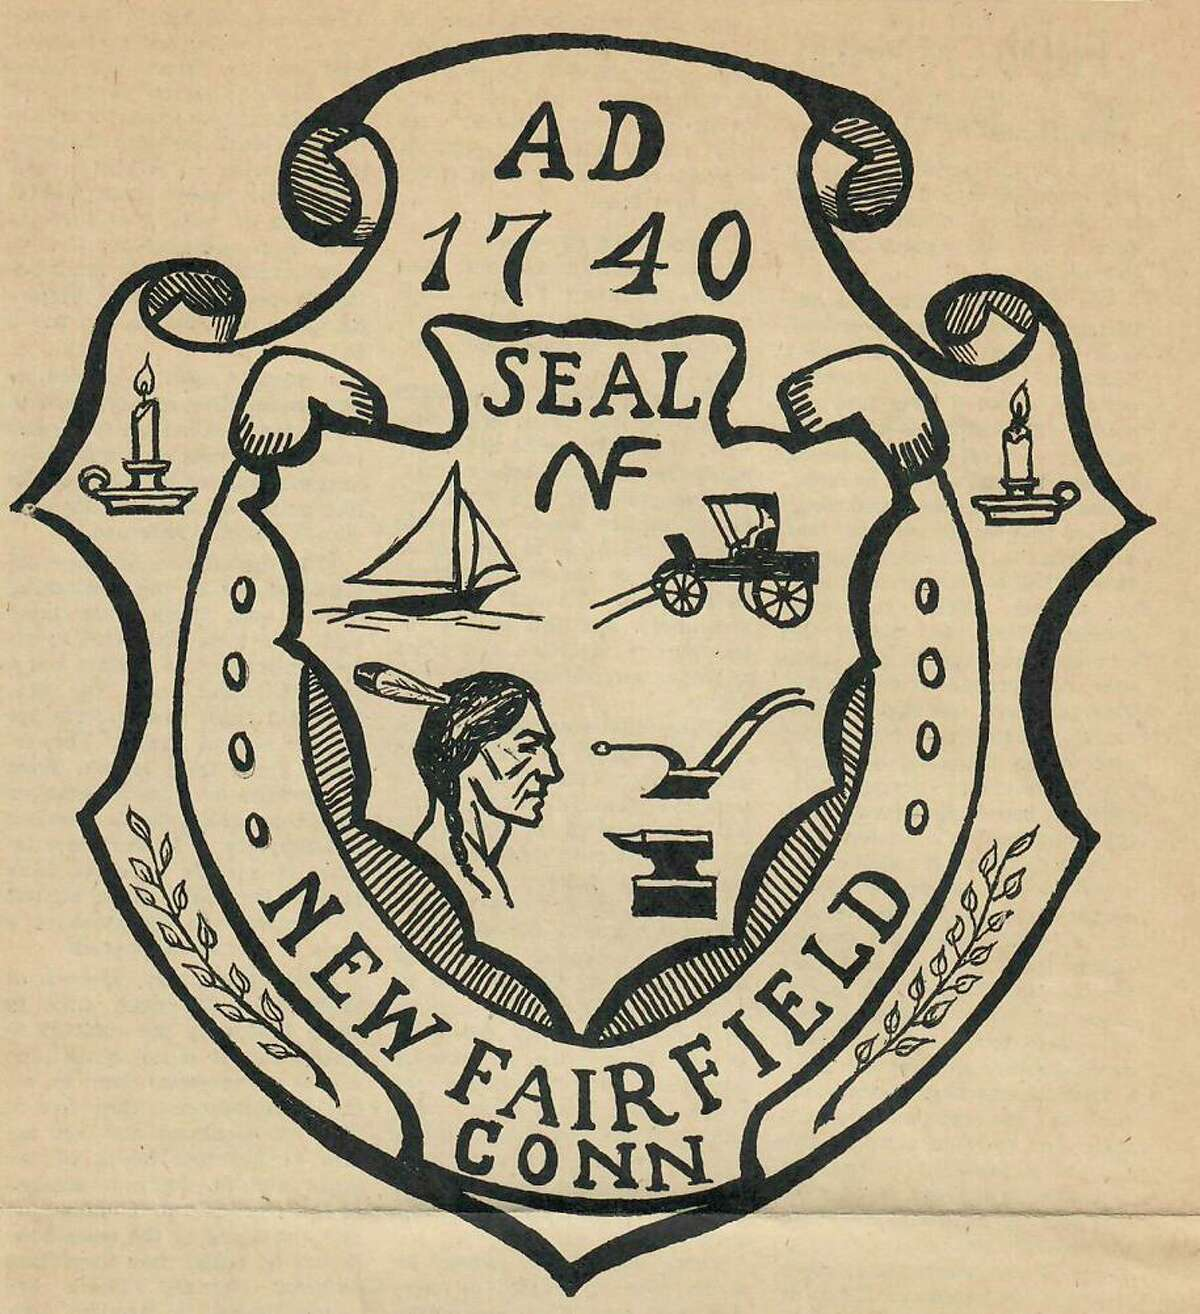 A rendering of the to-be-approved New Fairfield town seal published in the New Fairfield Crier in September 1968.